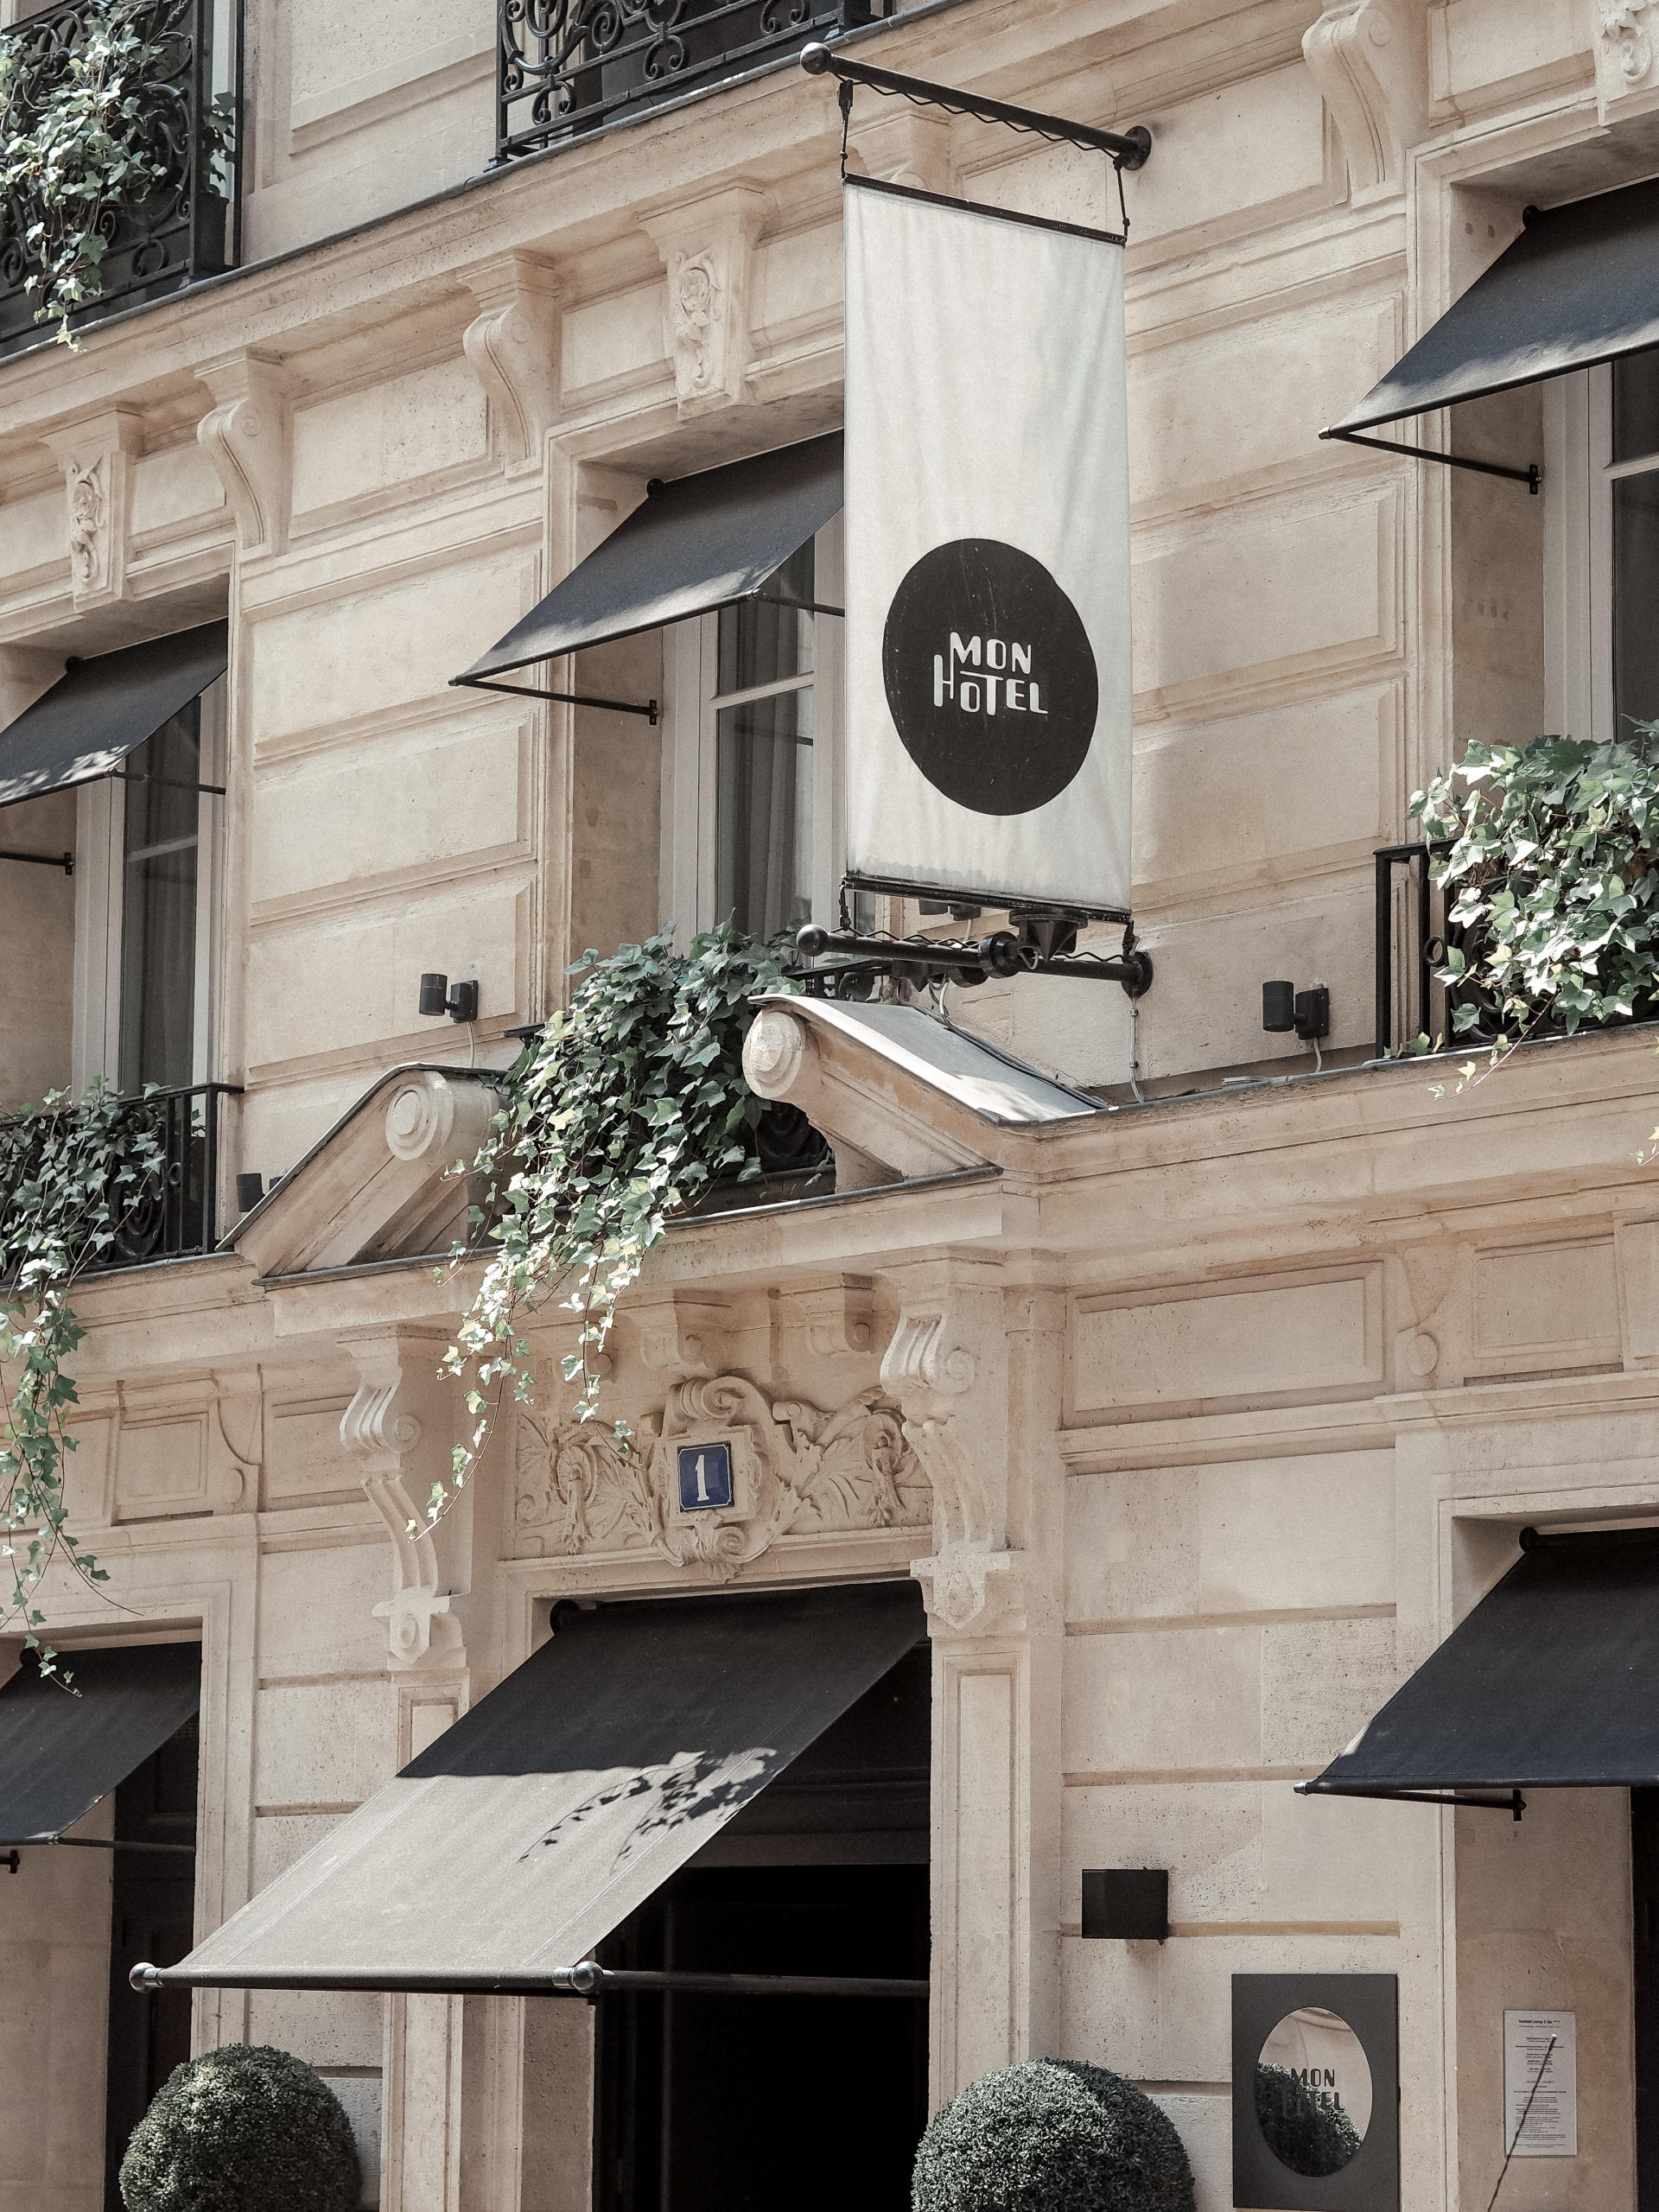 A stay with Mon Hotel in Paris, France